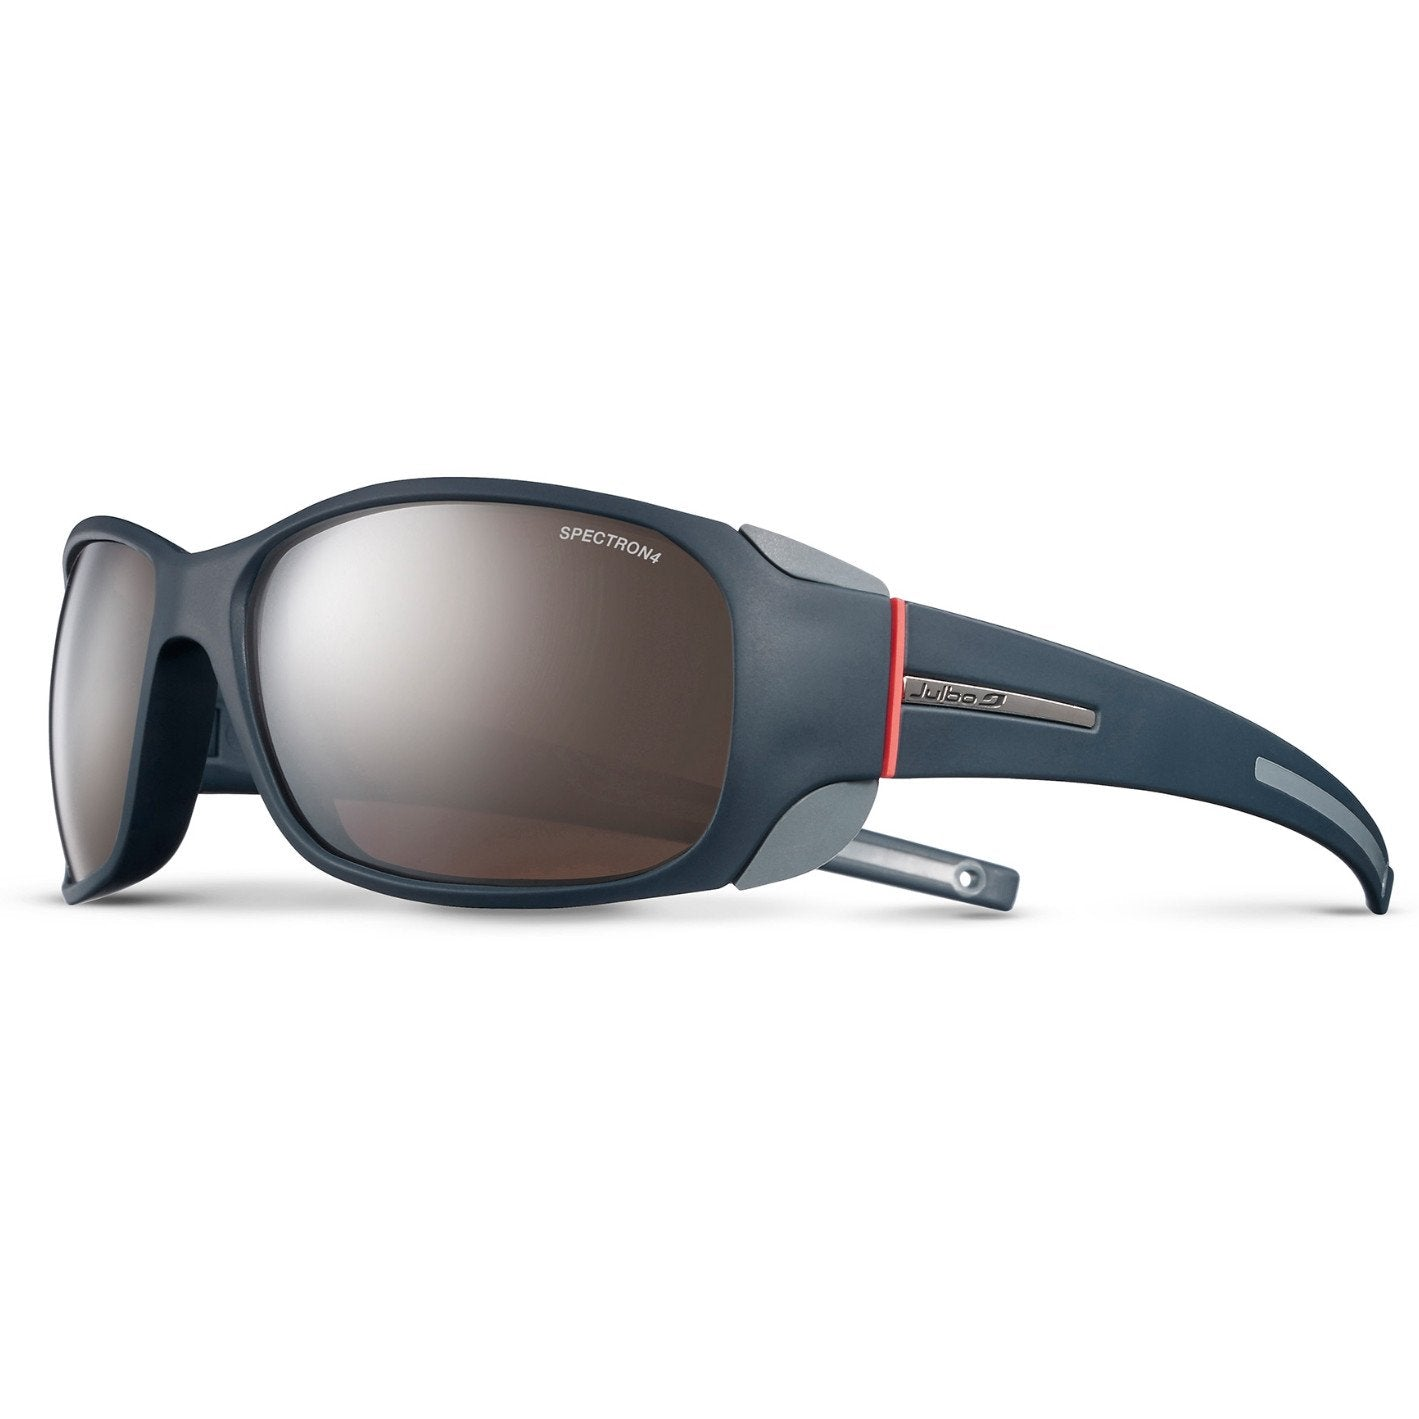 Julbo Monterosa Spectron 4, in blue/Grey/Coral colours, shown front/side on